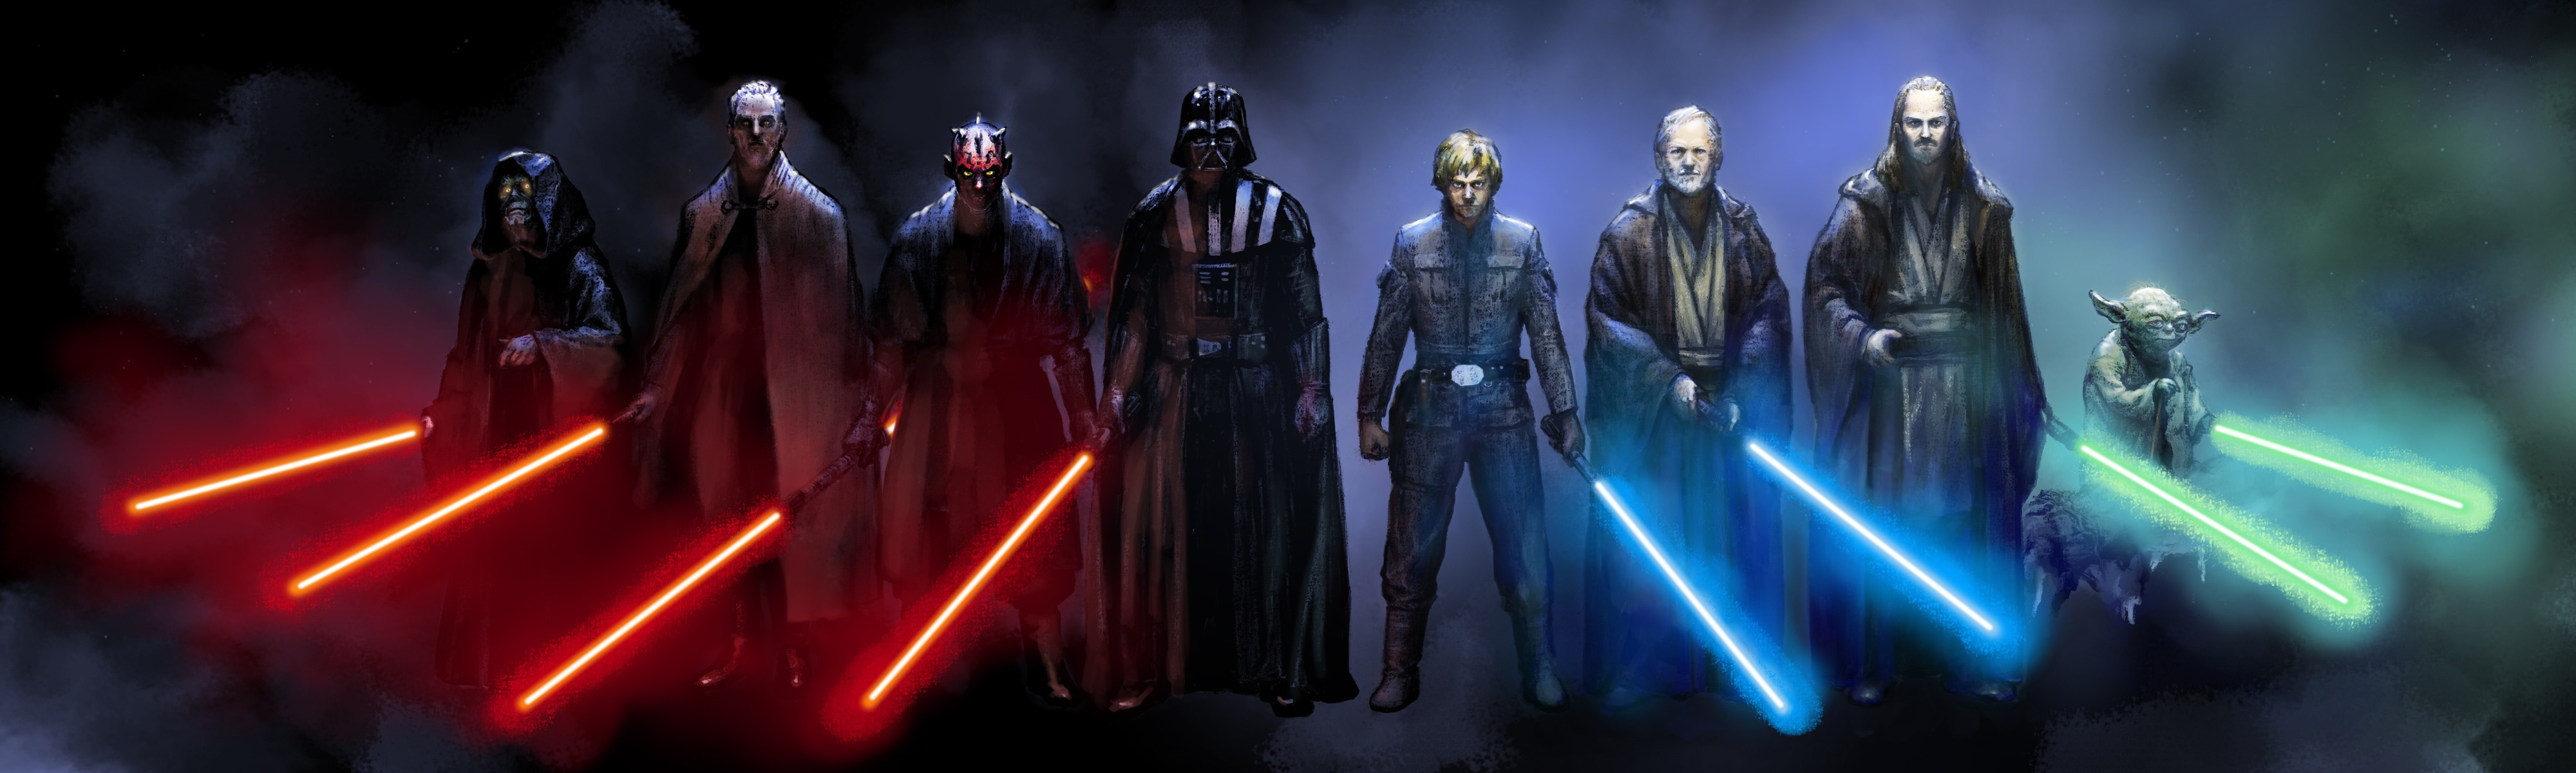 dark side vs light side - univerlist